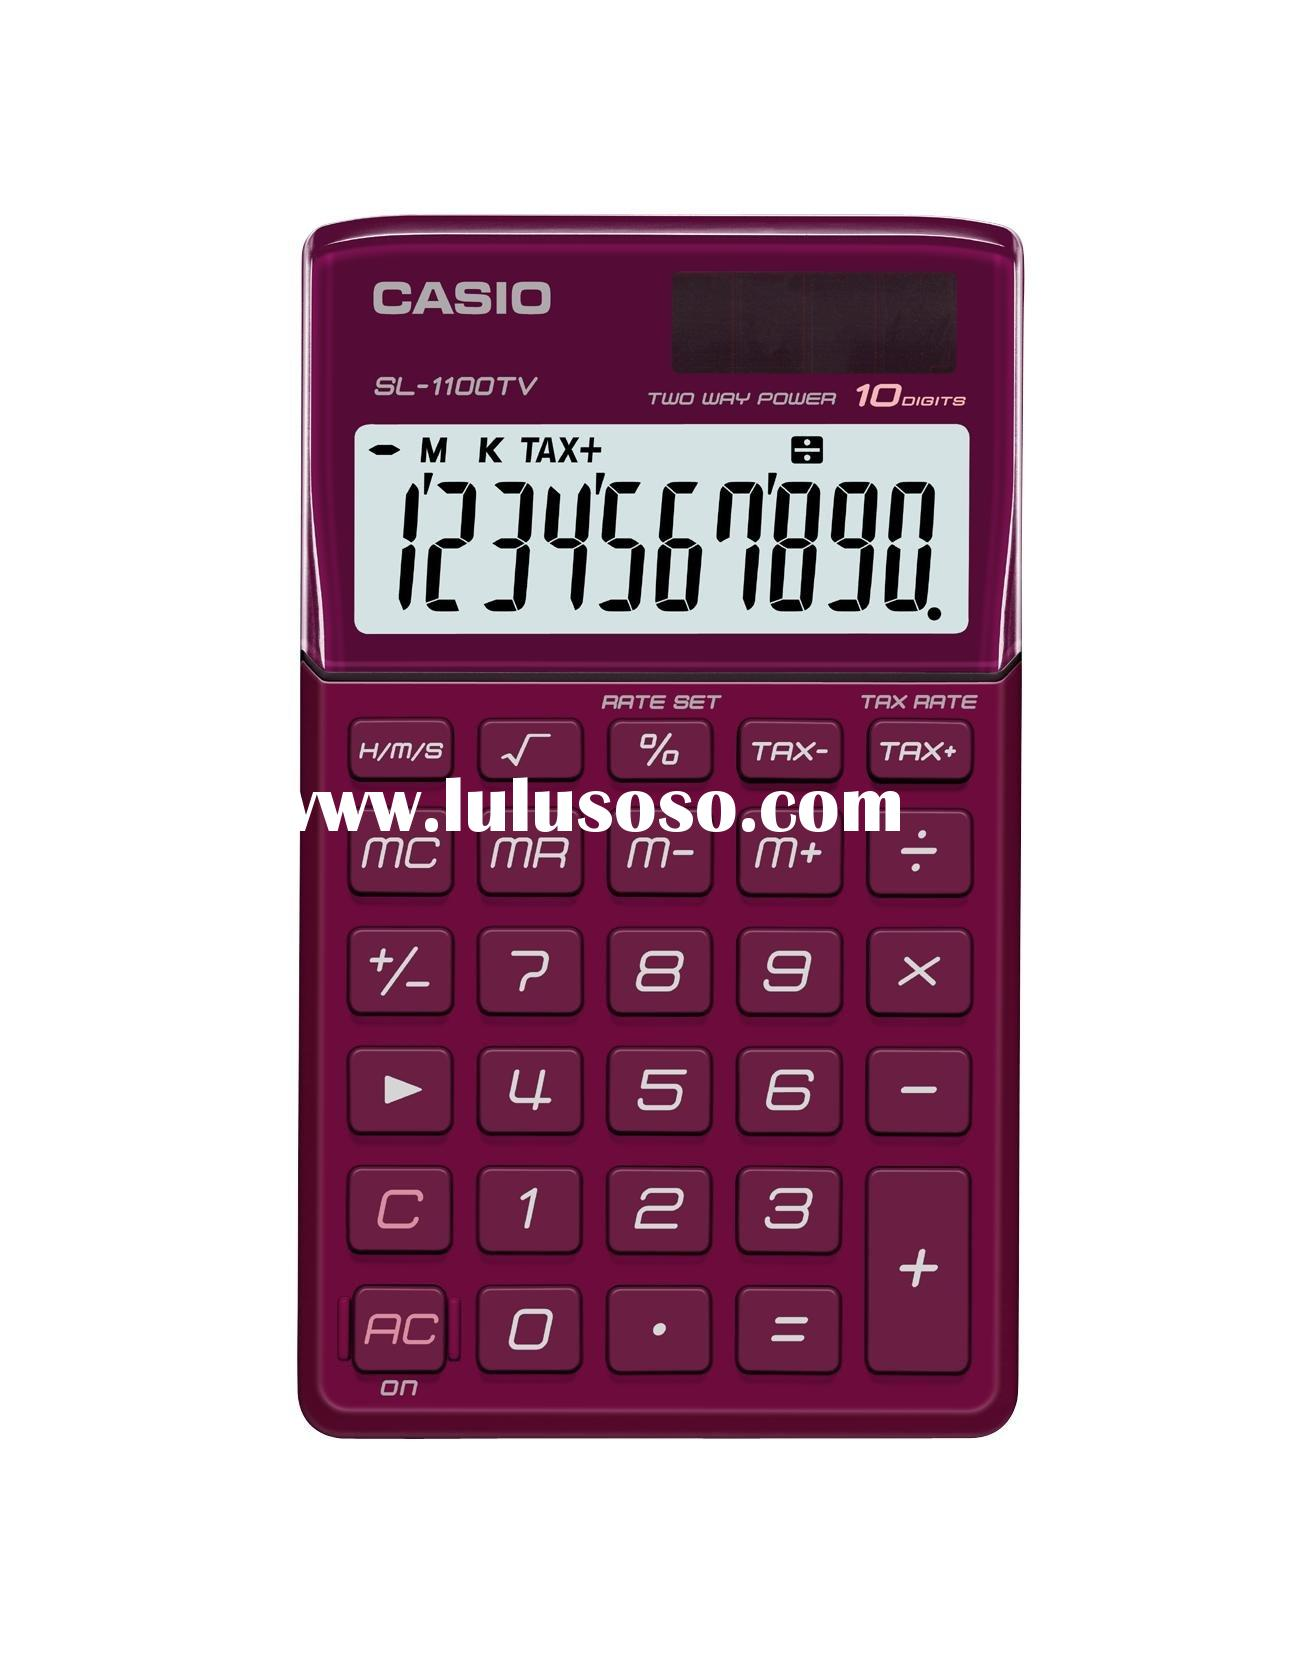 Casio SL 1100TV Desktop Calculator